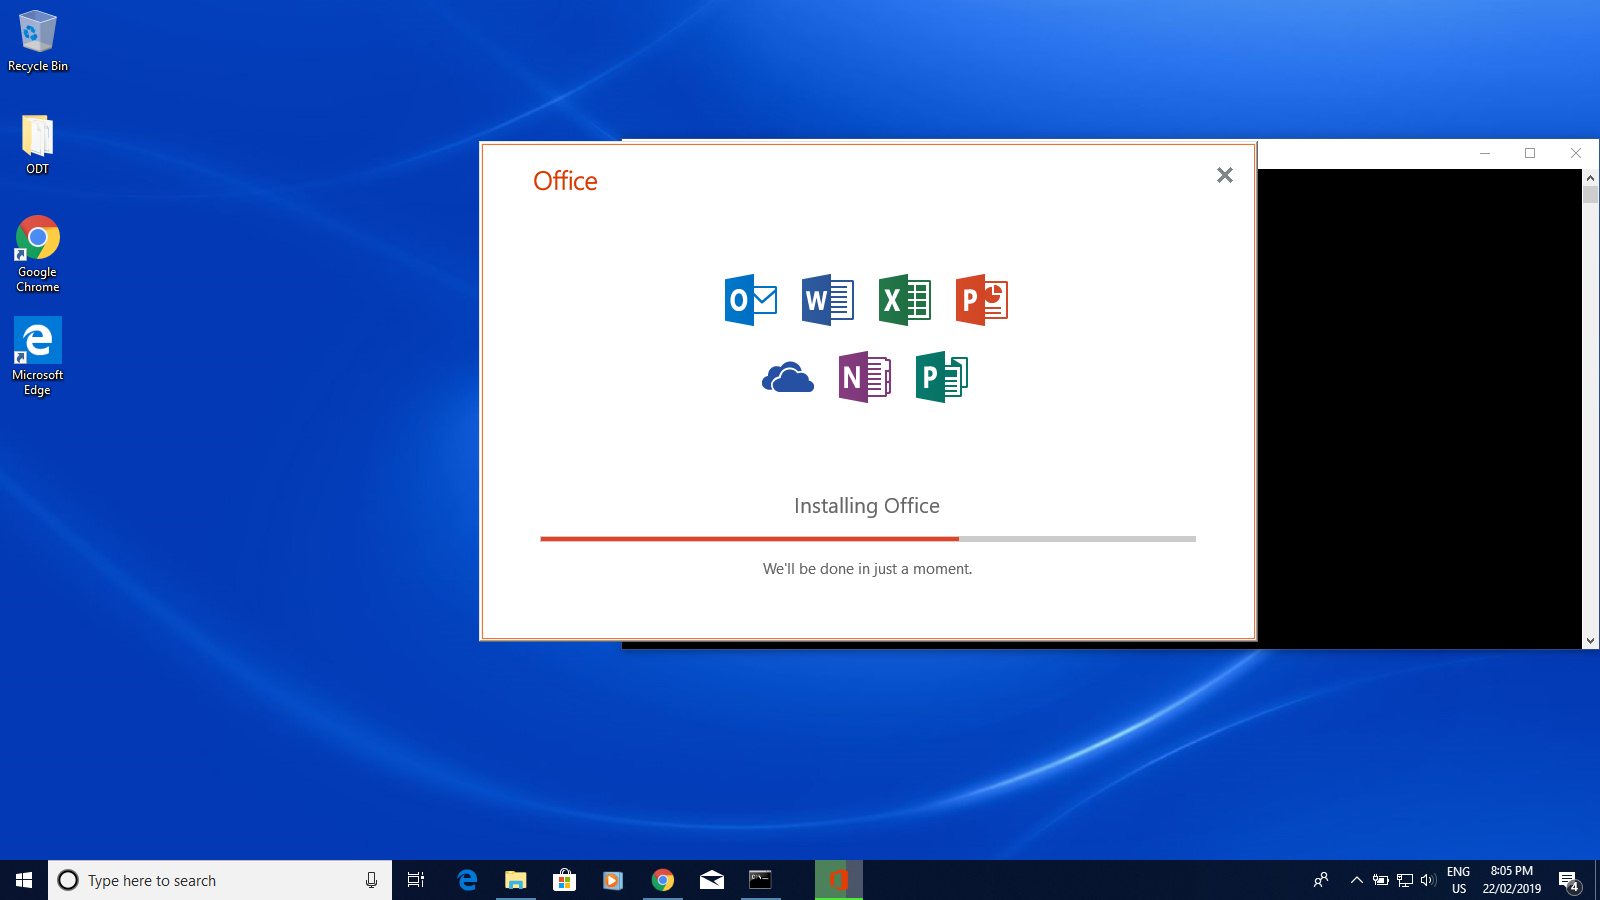 Dialogue box displays the progress of the installation of Microsoft Office 2019.